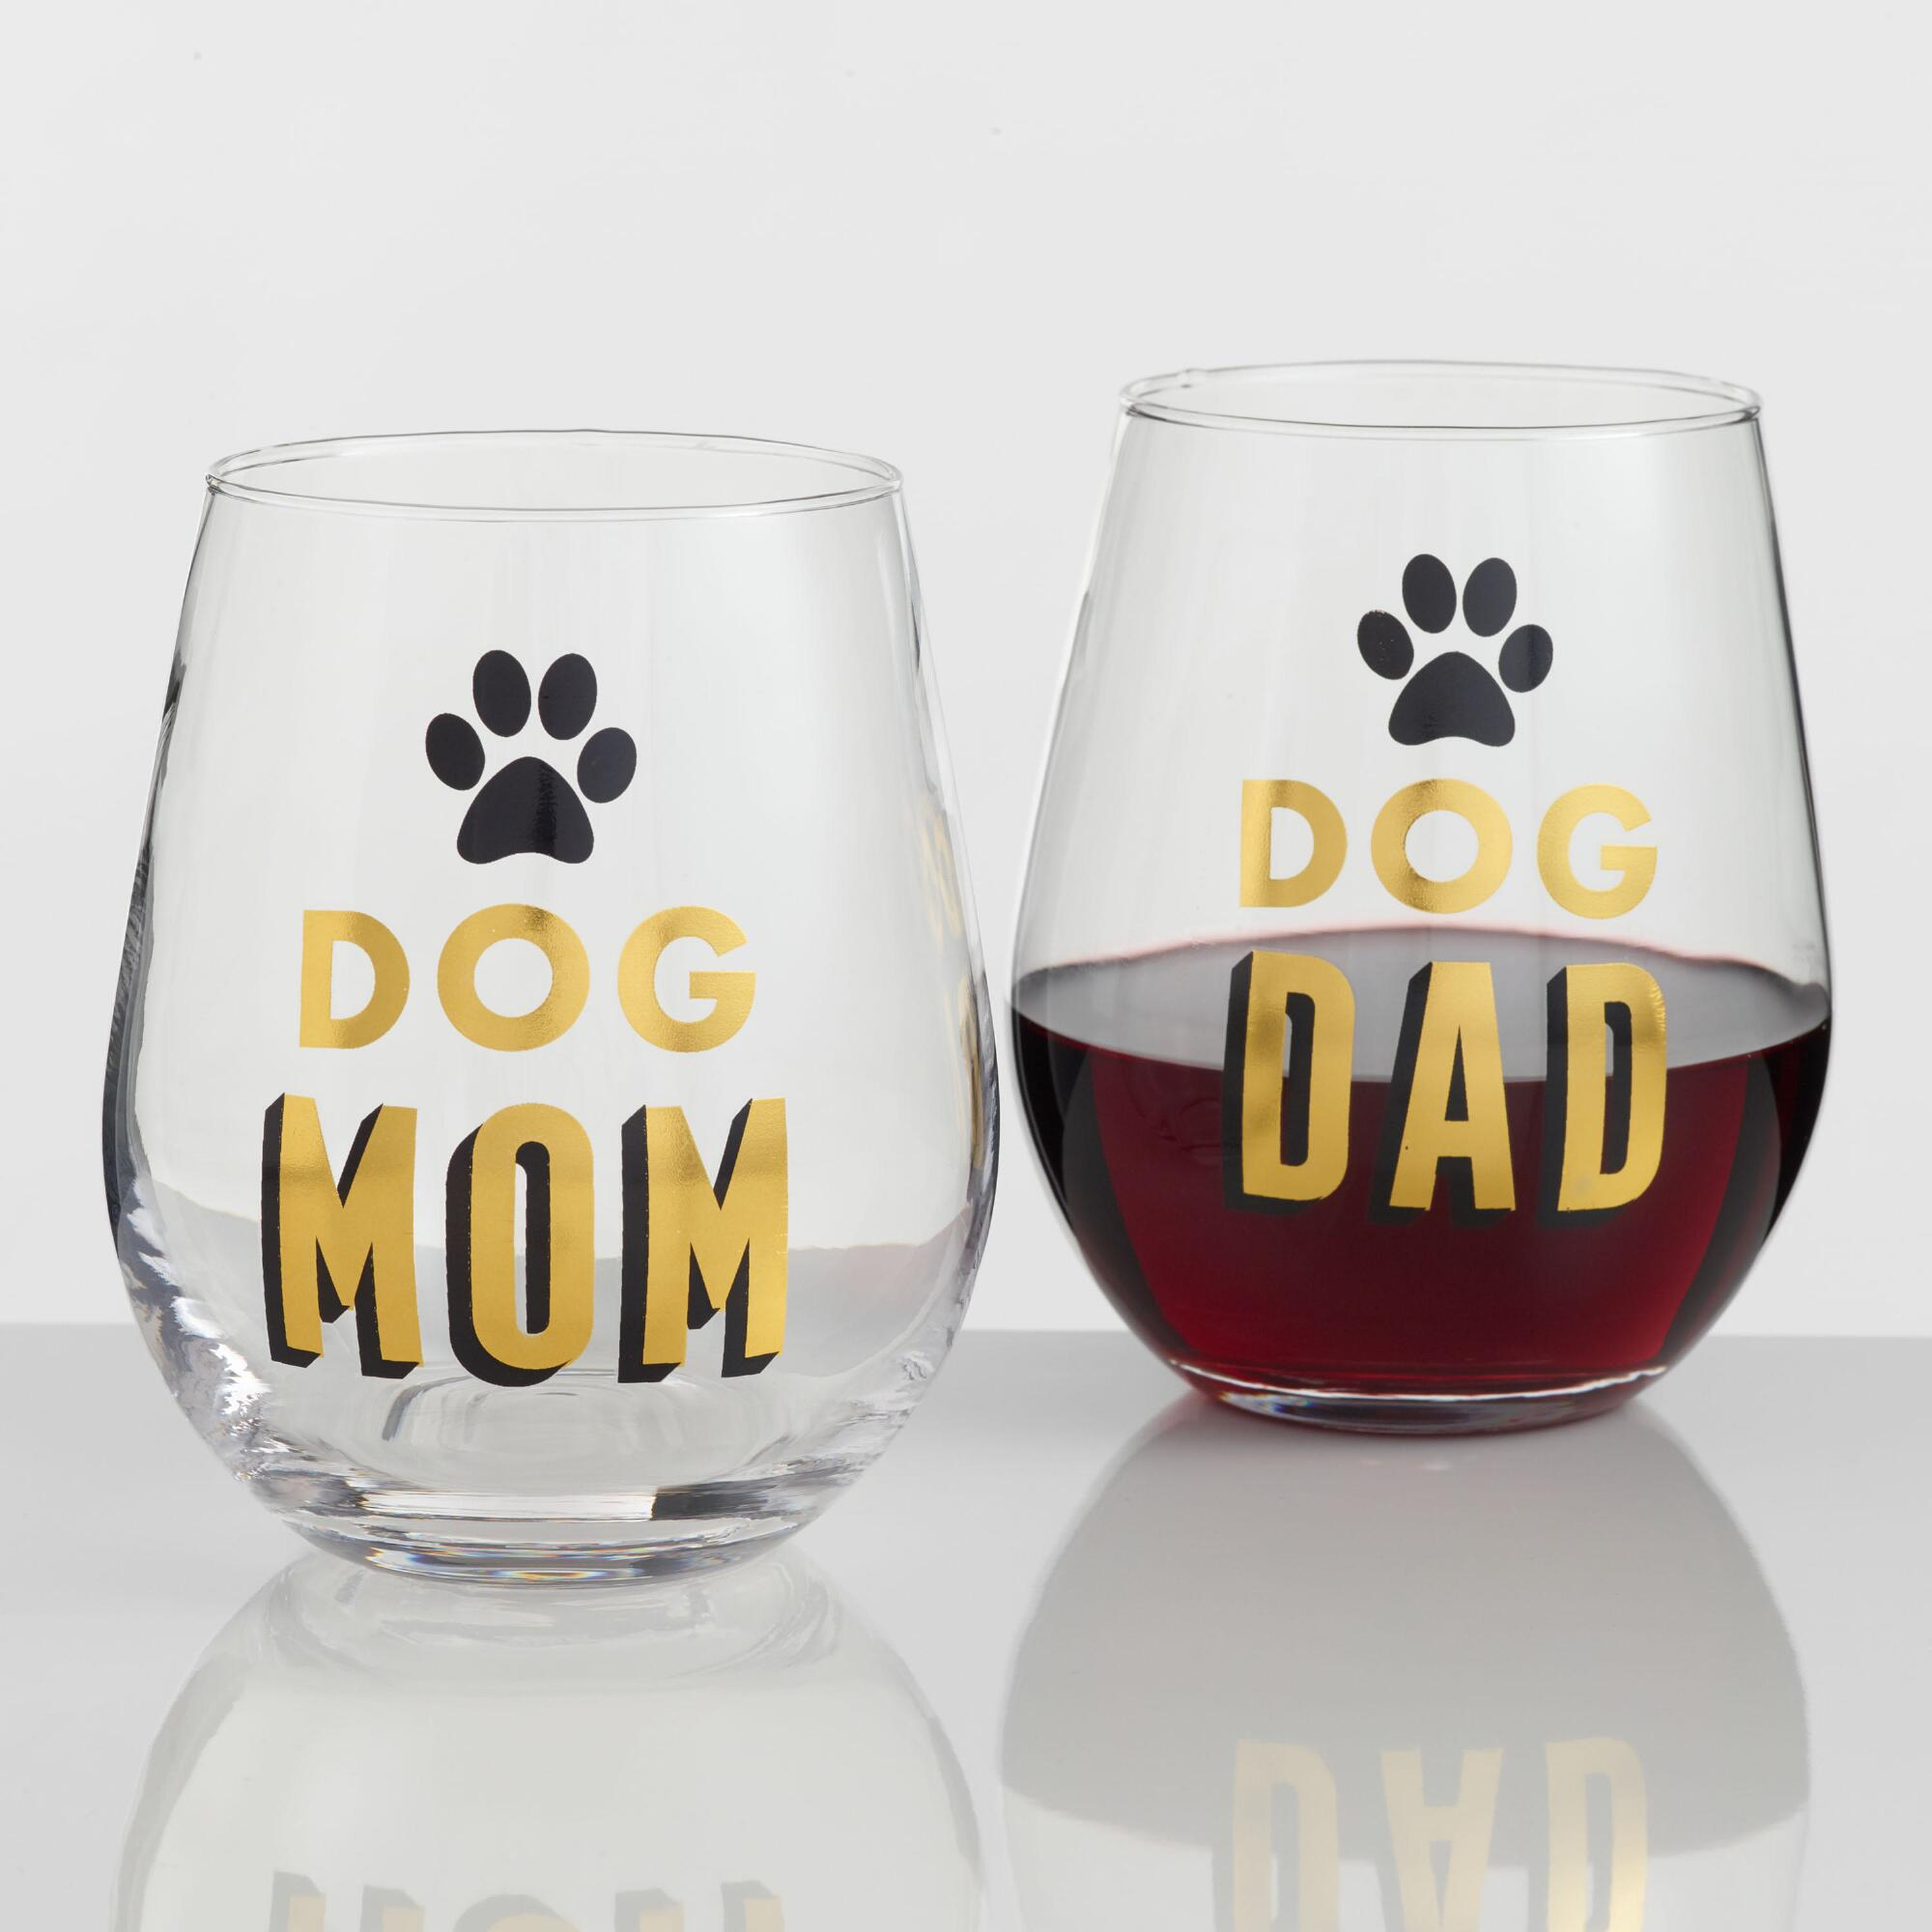 Dog Mom and Dad Stemless Wine Glasses Set of 2 by World Market